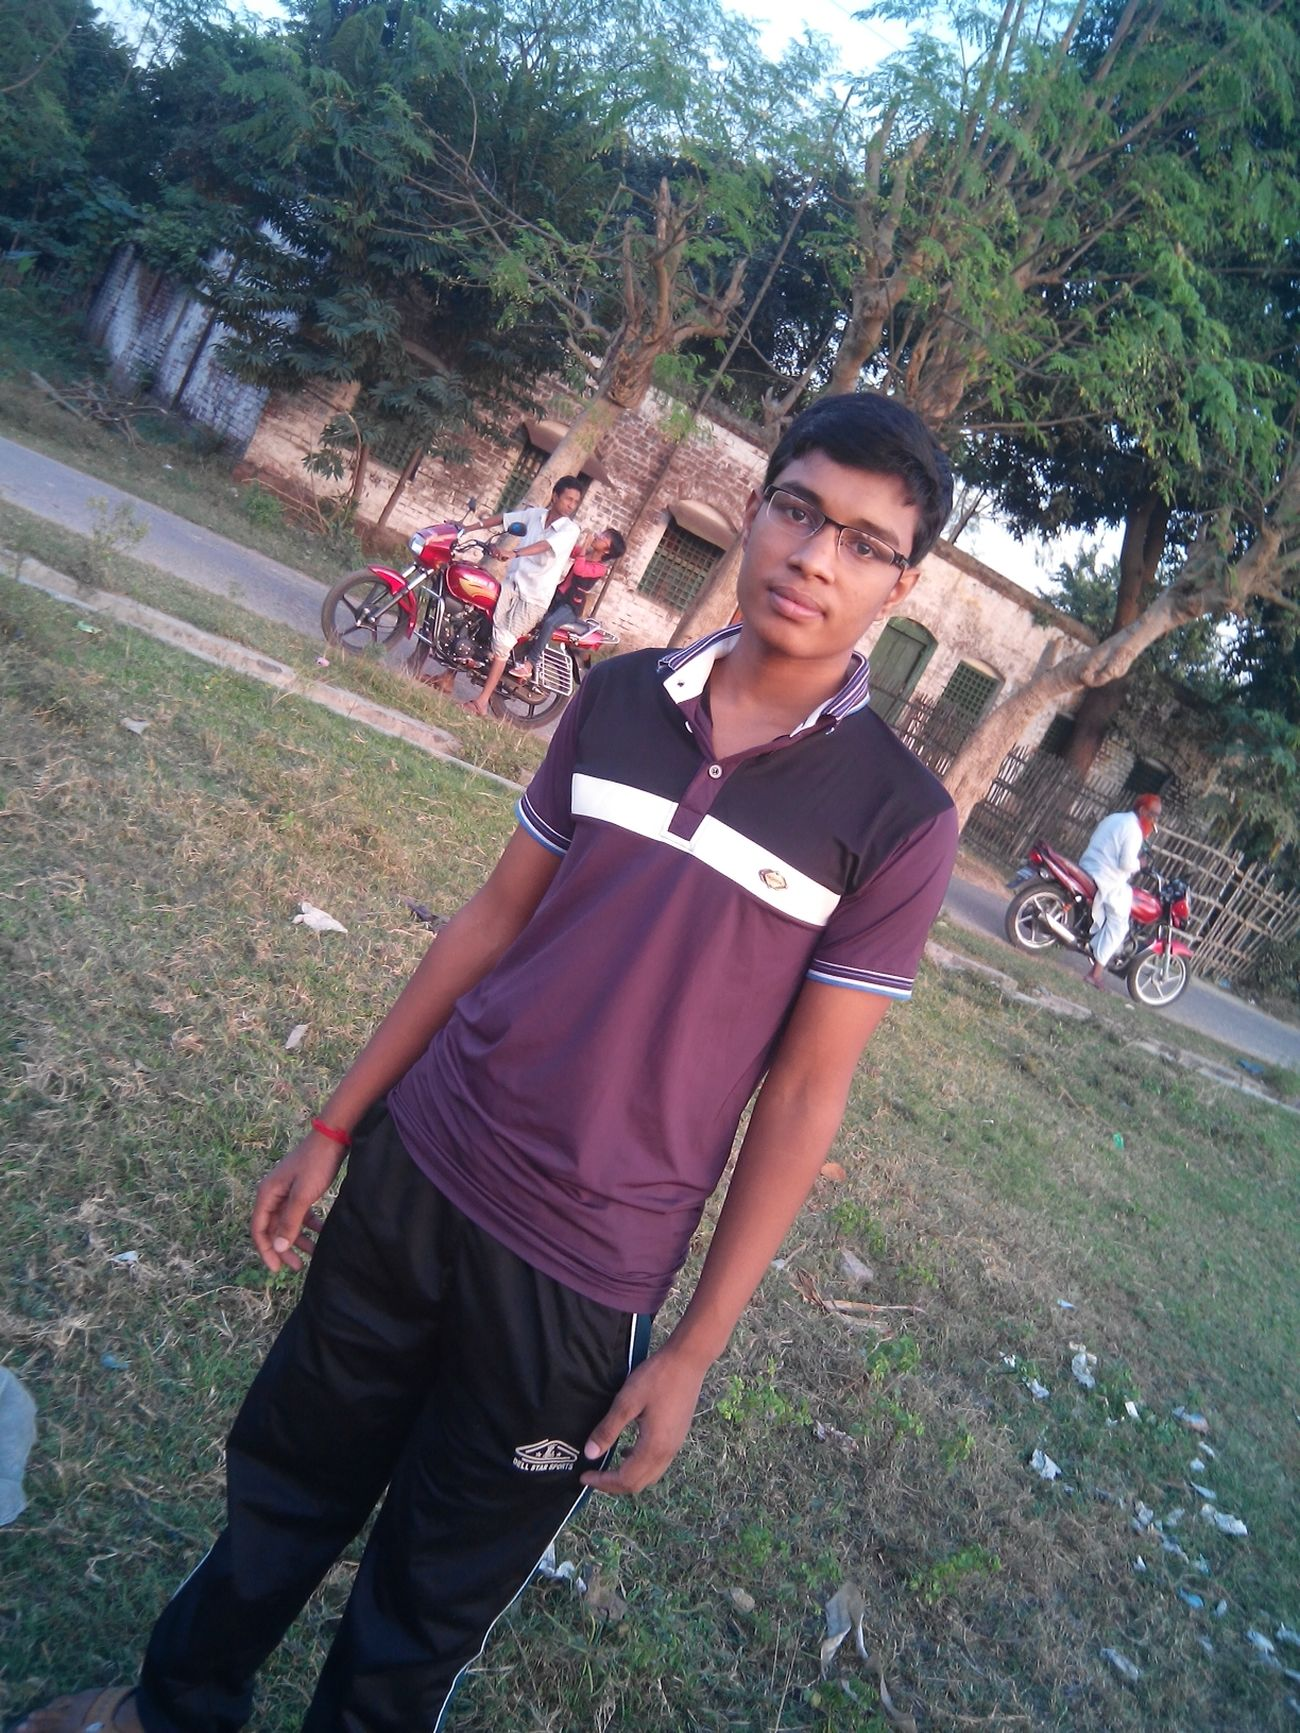 me at darsana bazar field Taking Photos